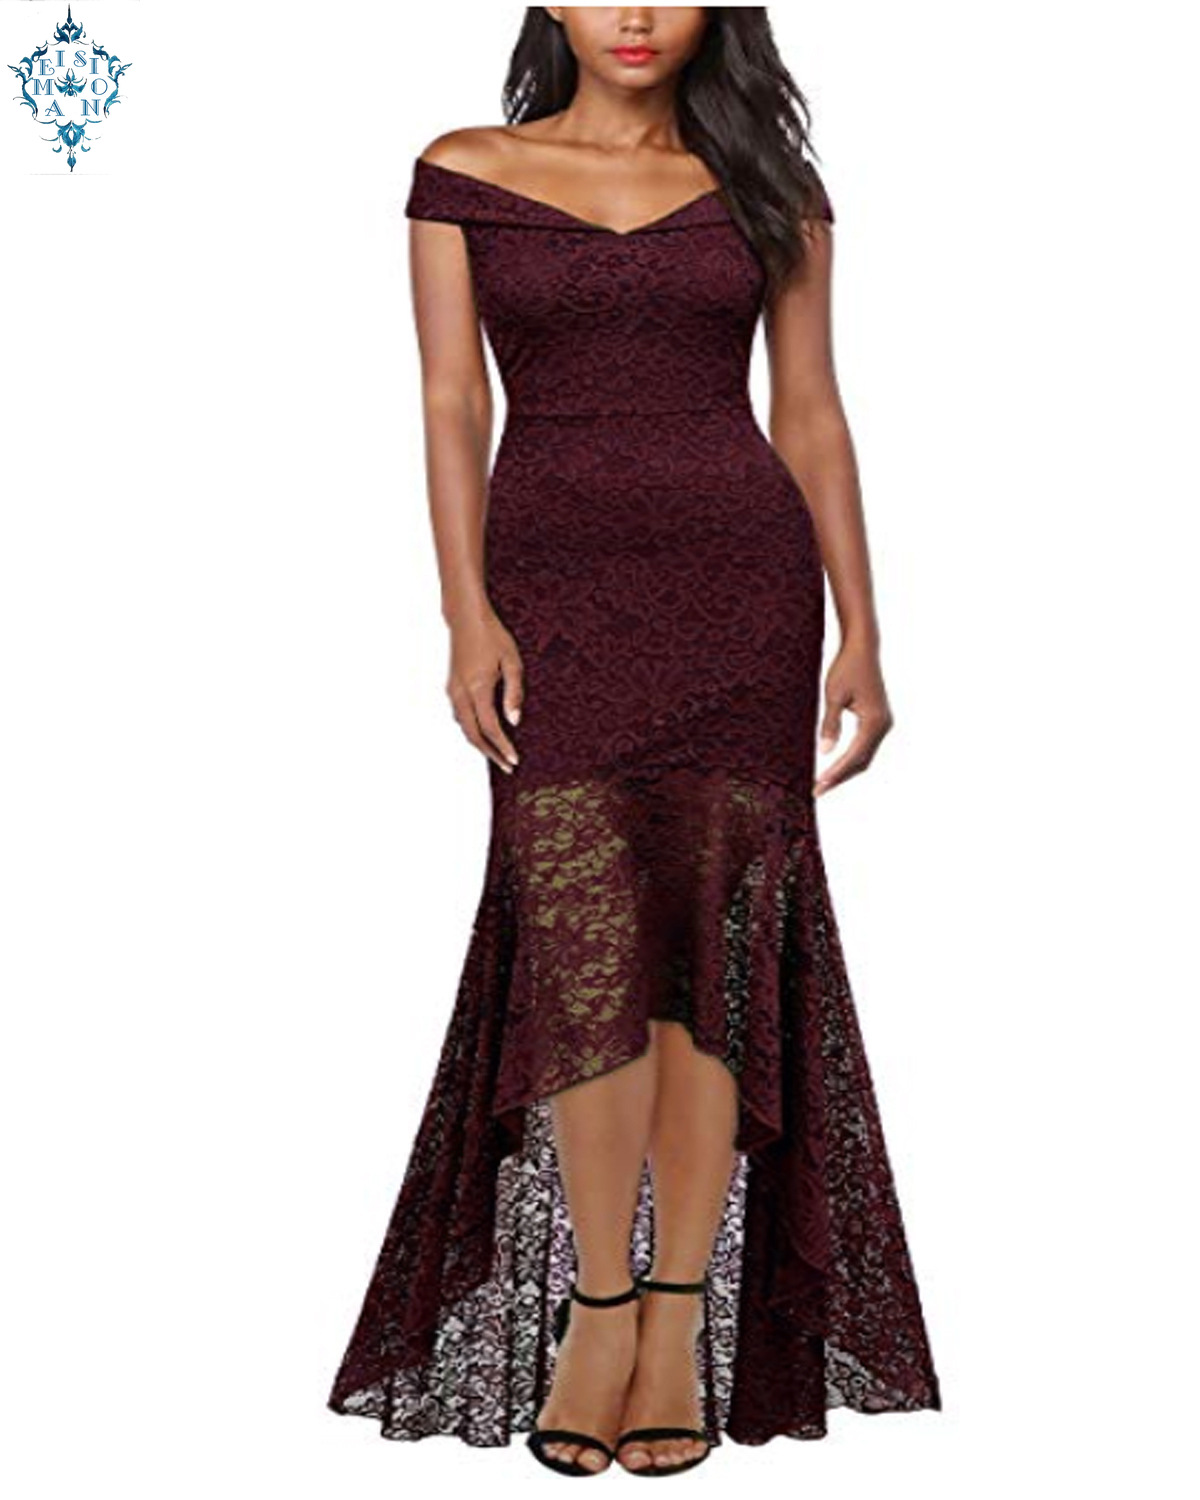 Ameision Fishtail lace evening Dresses long Boat neck Sleeveless Elegant party dress prom gown womens fashion Clothing